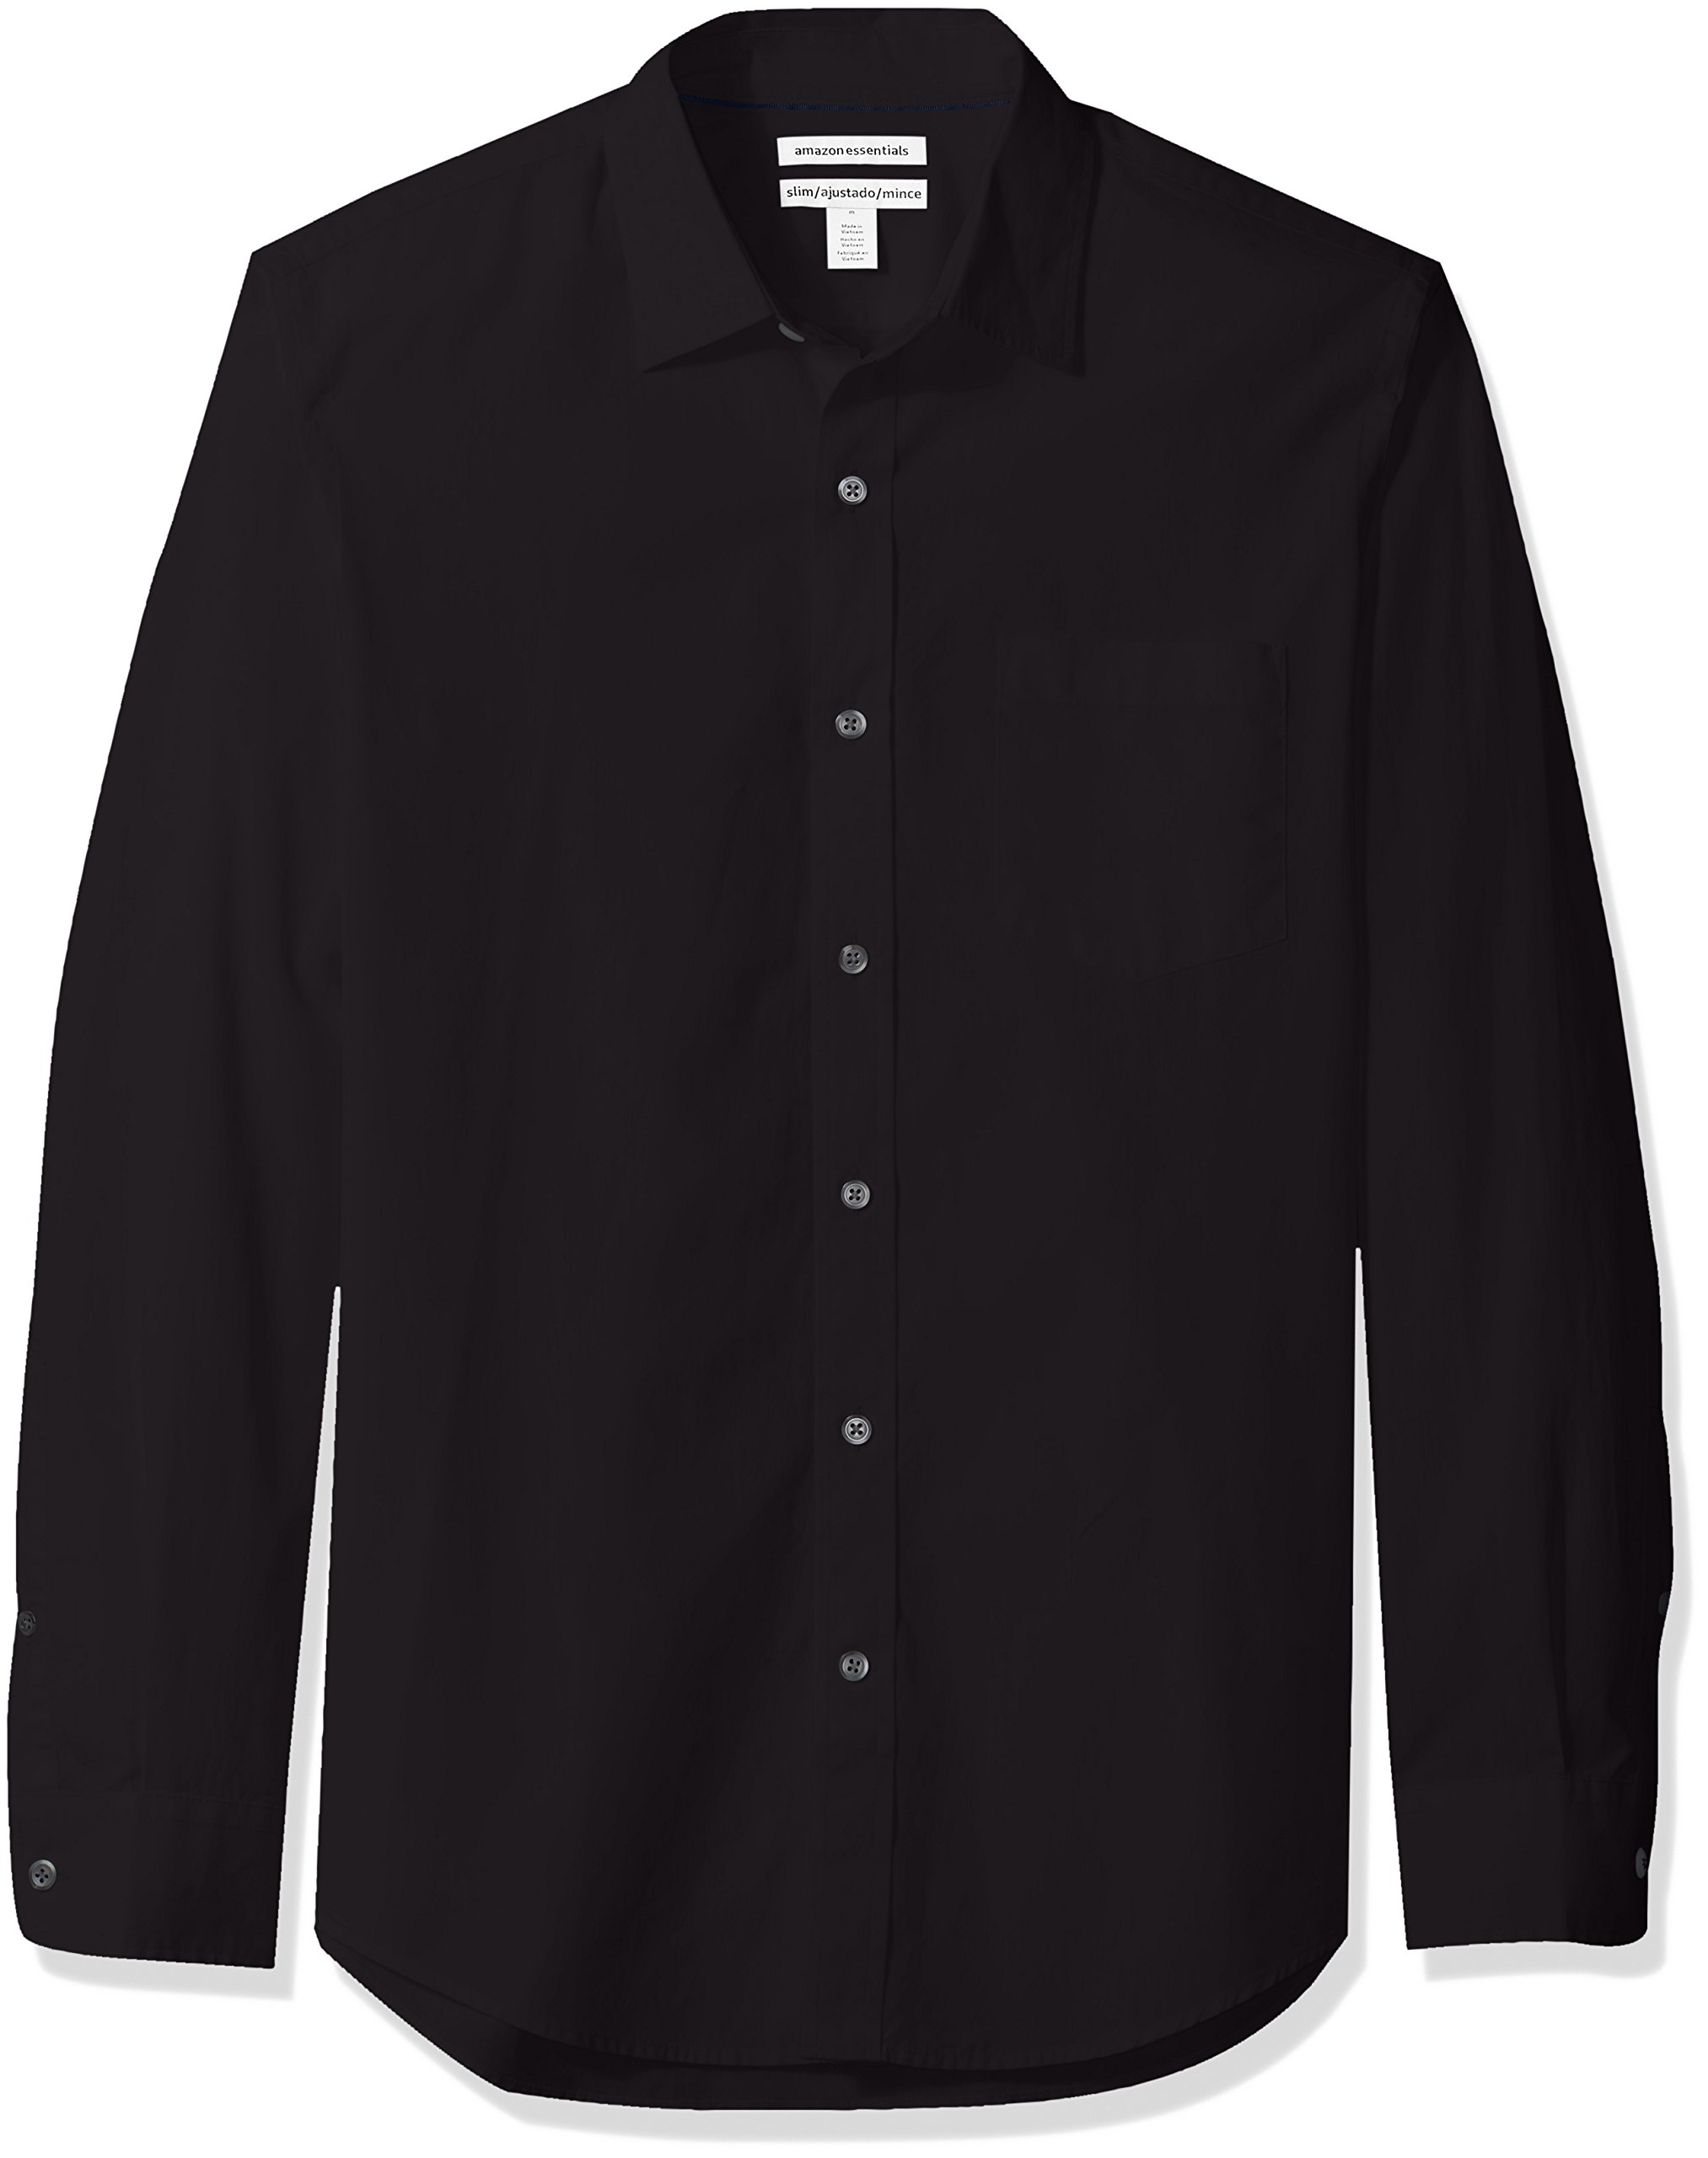 Amazon Essentials Men's Slim-Fit Long-Sleeve Poplin Shirt, Black, Large